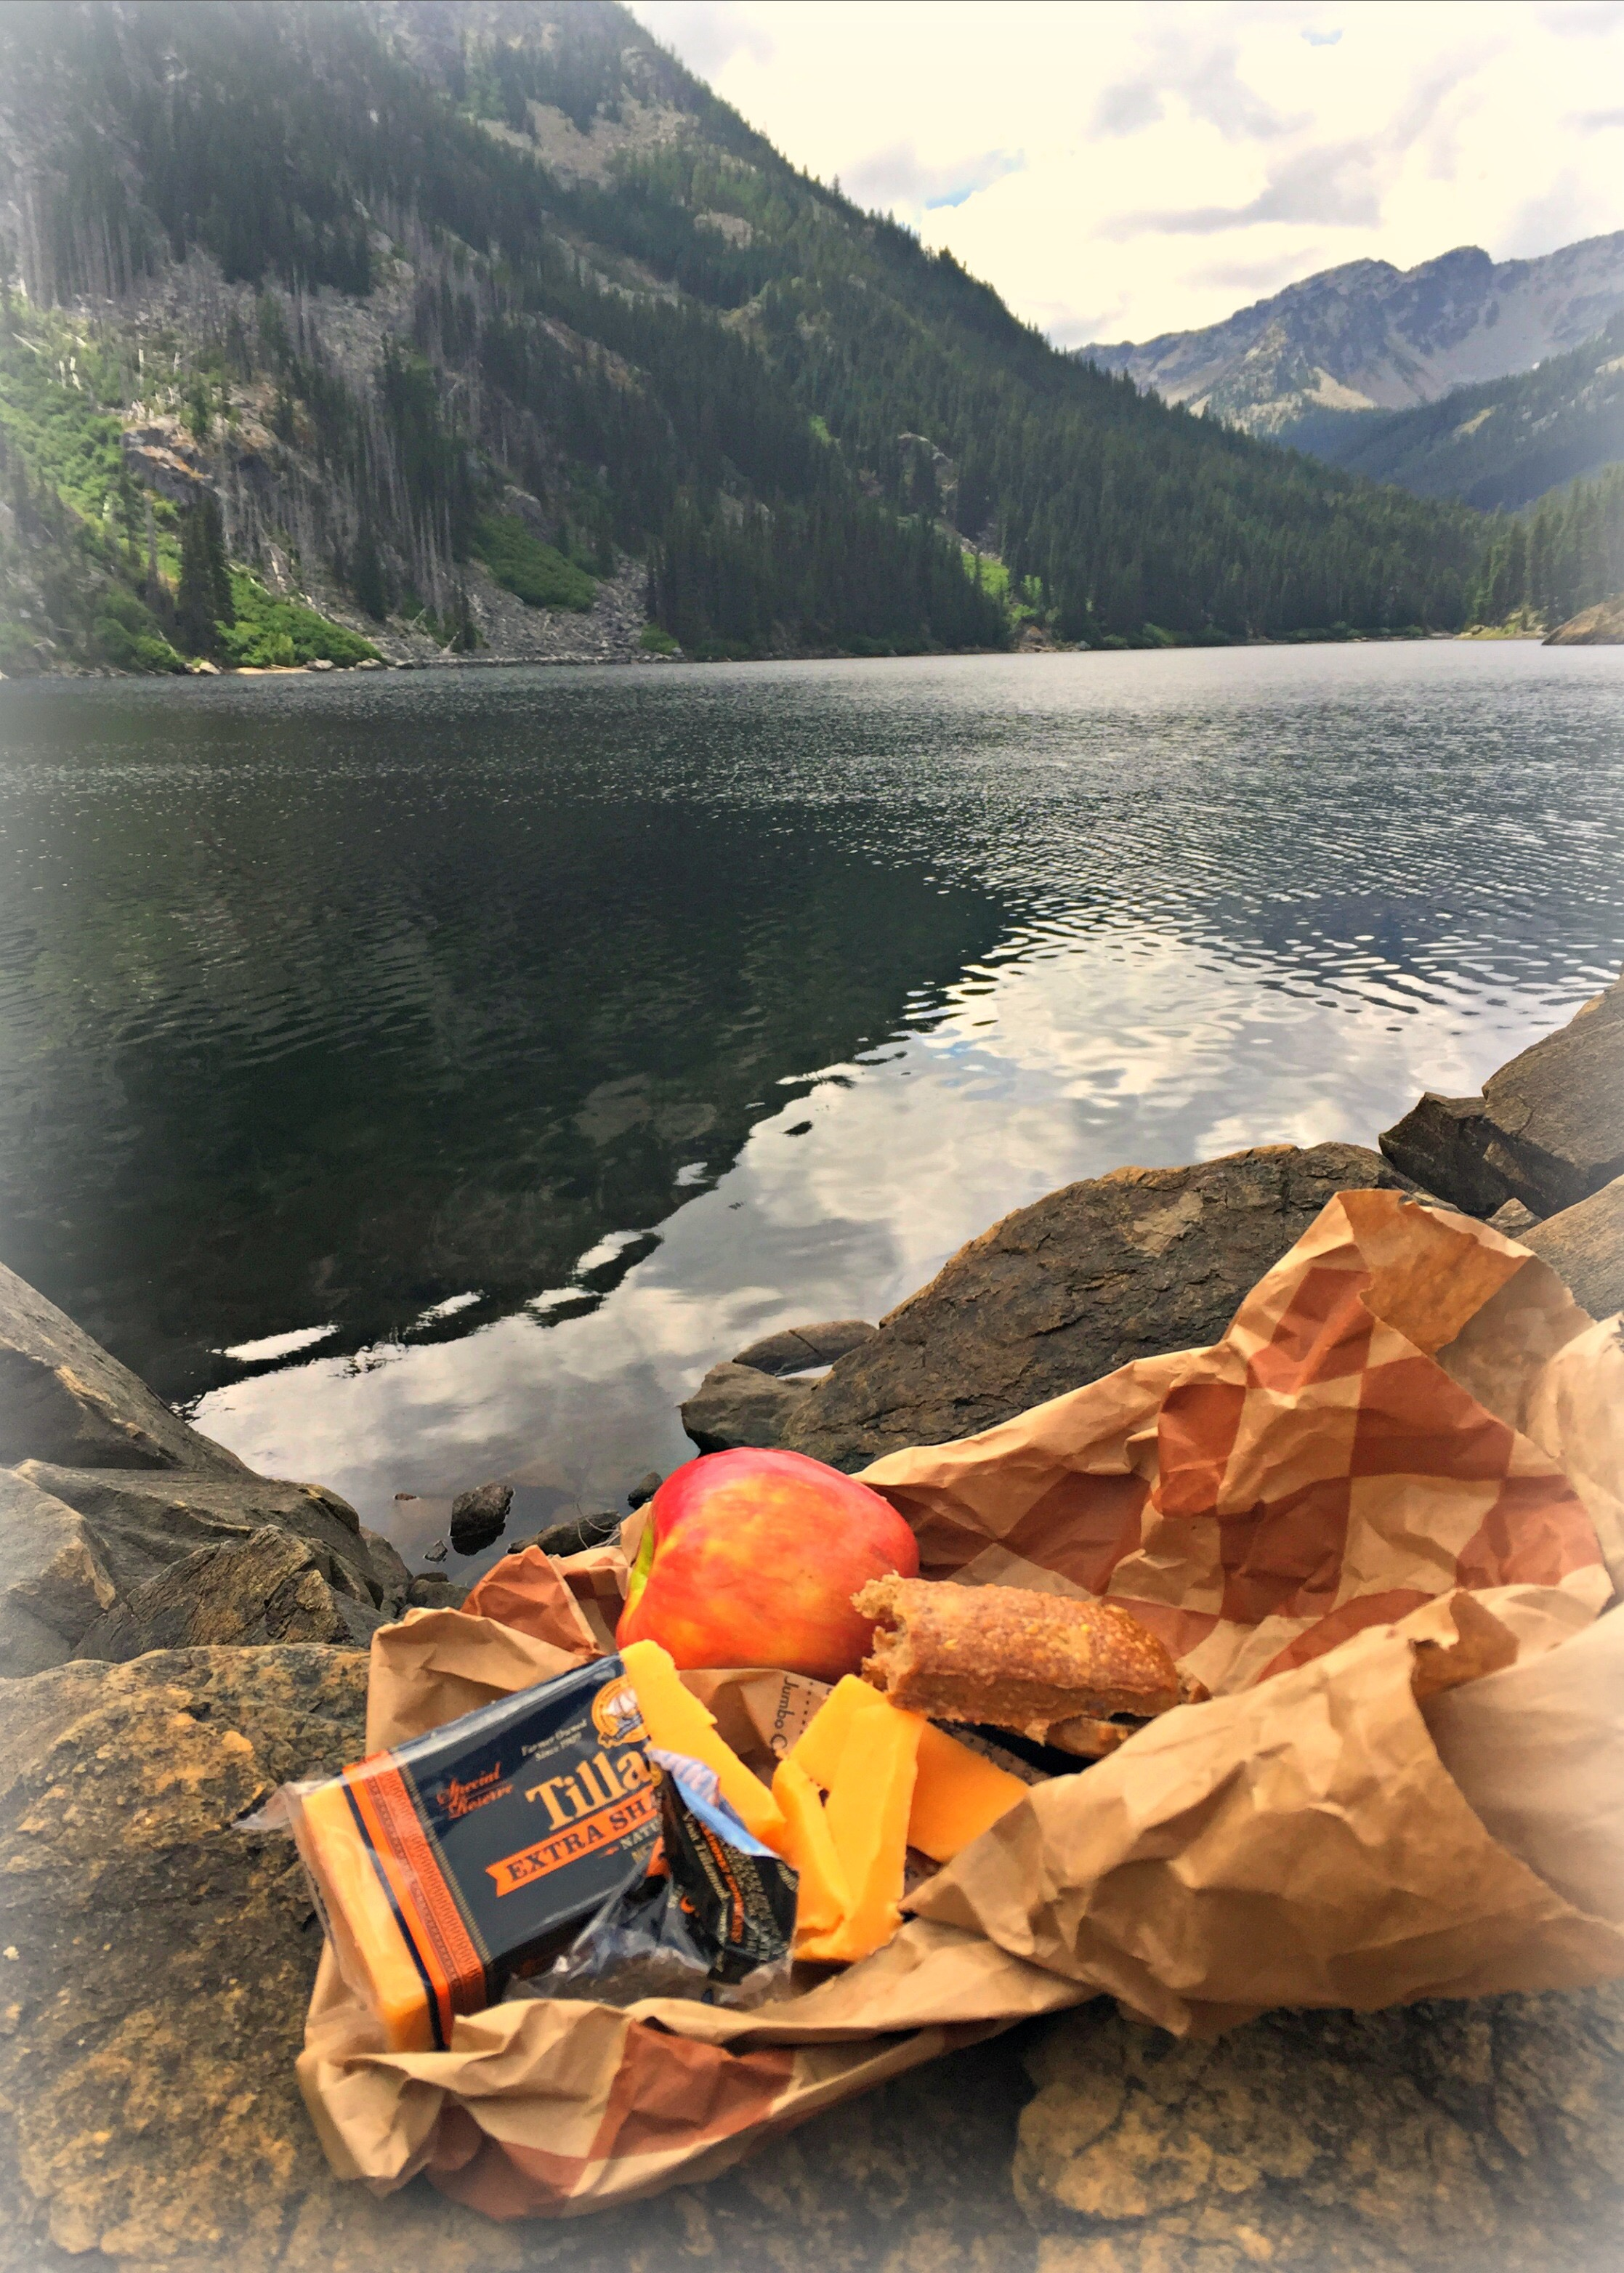 Lunch in the Alpine Lake Wilderness